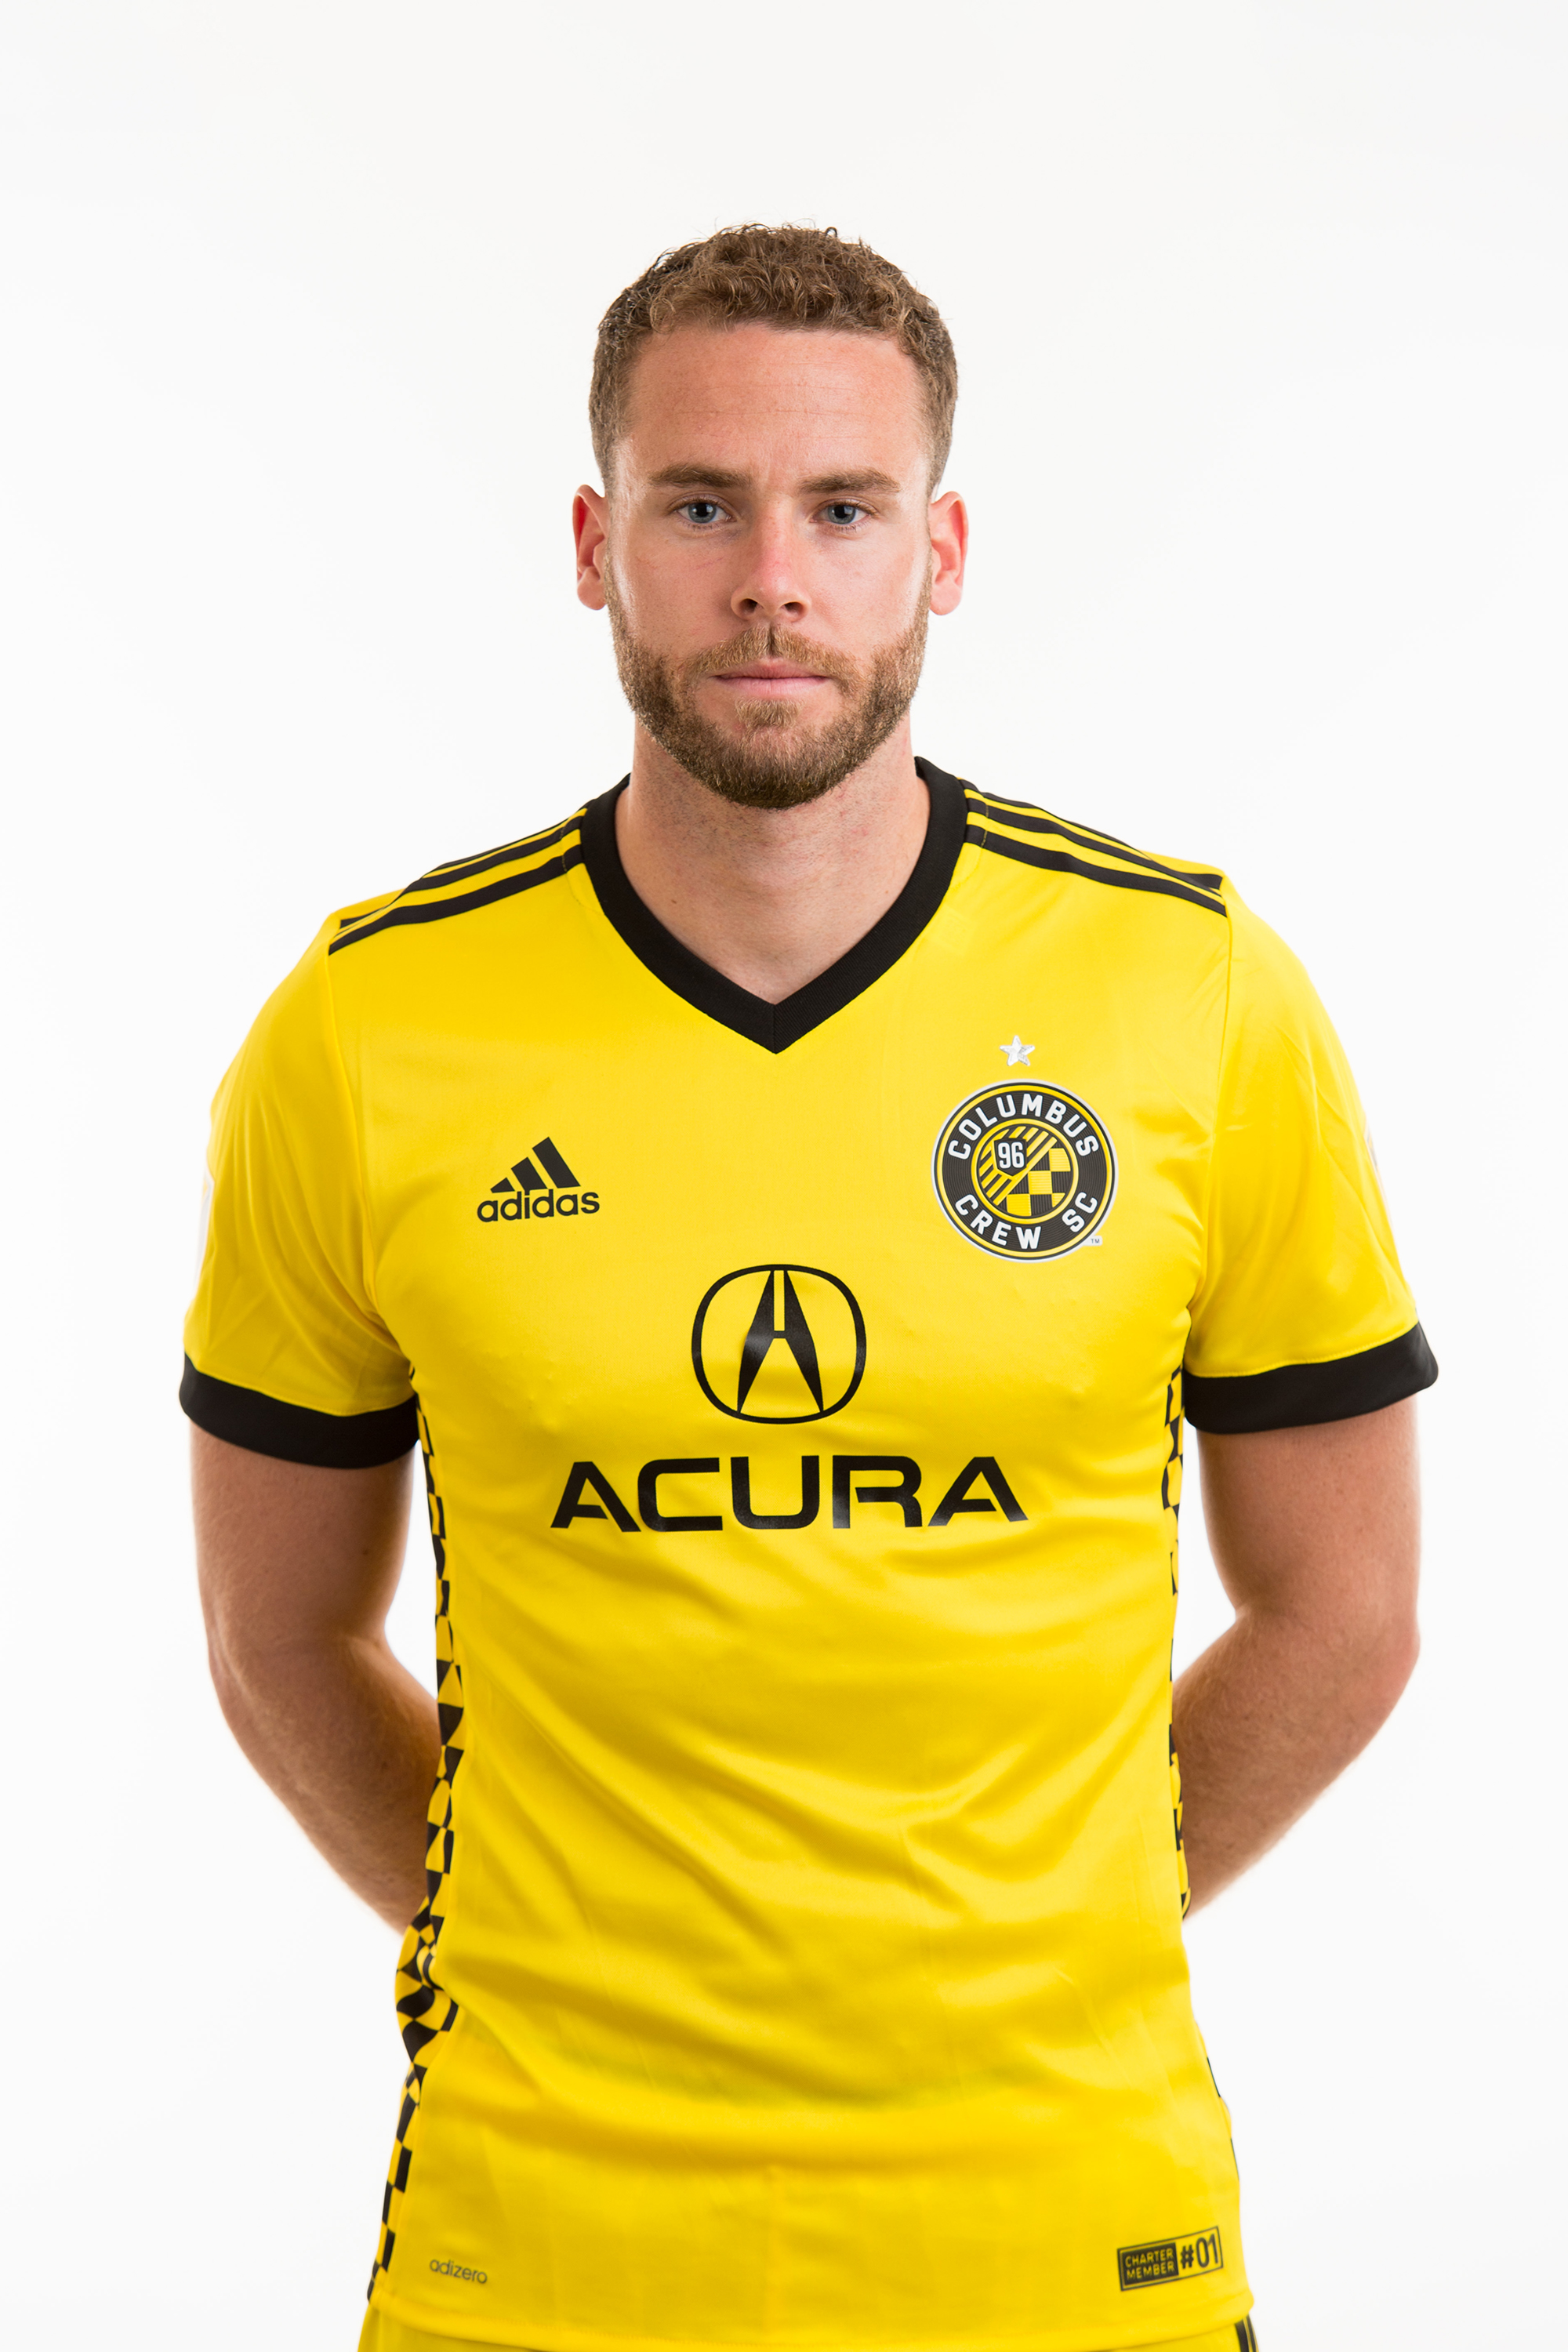 Josh Williams a defender, is currently in his eighth season as a Major League Soccer player and has made more than 100 MLS appearances. Williams joined Crew SC ahead of the 2017 MLS season for his second stint with the club, having previously played for the Black & Gold from 2010-2014. A native of Northeast Ohio, Williams grew up in Copley, Ohio and played four seasons for Cleveland State University, captaining the team during his junior and senior year.